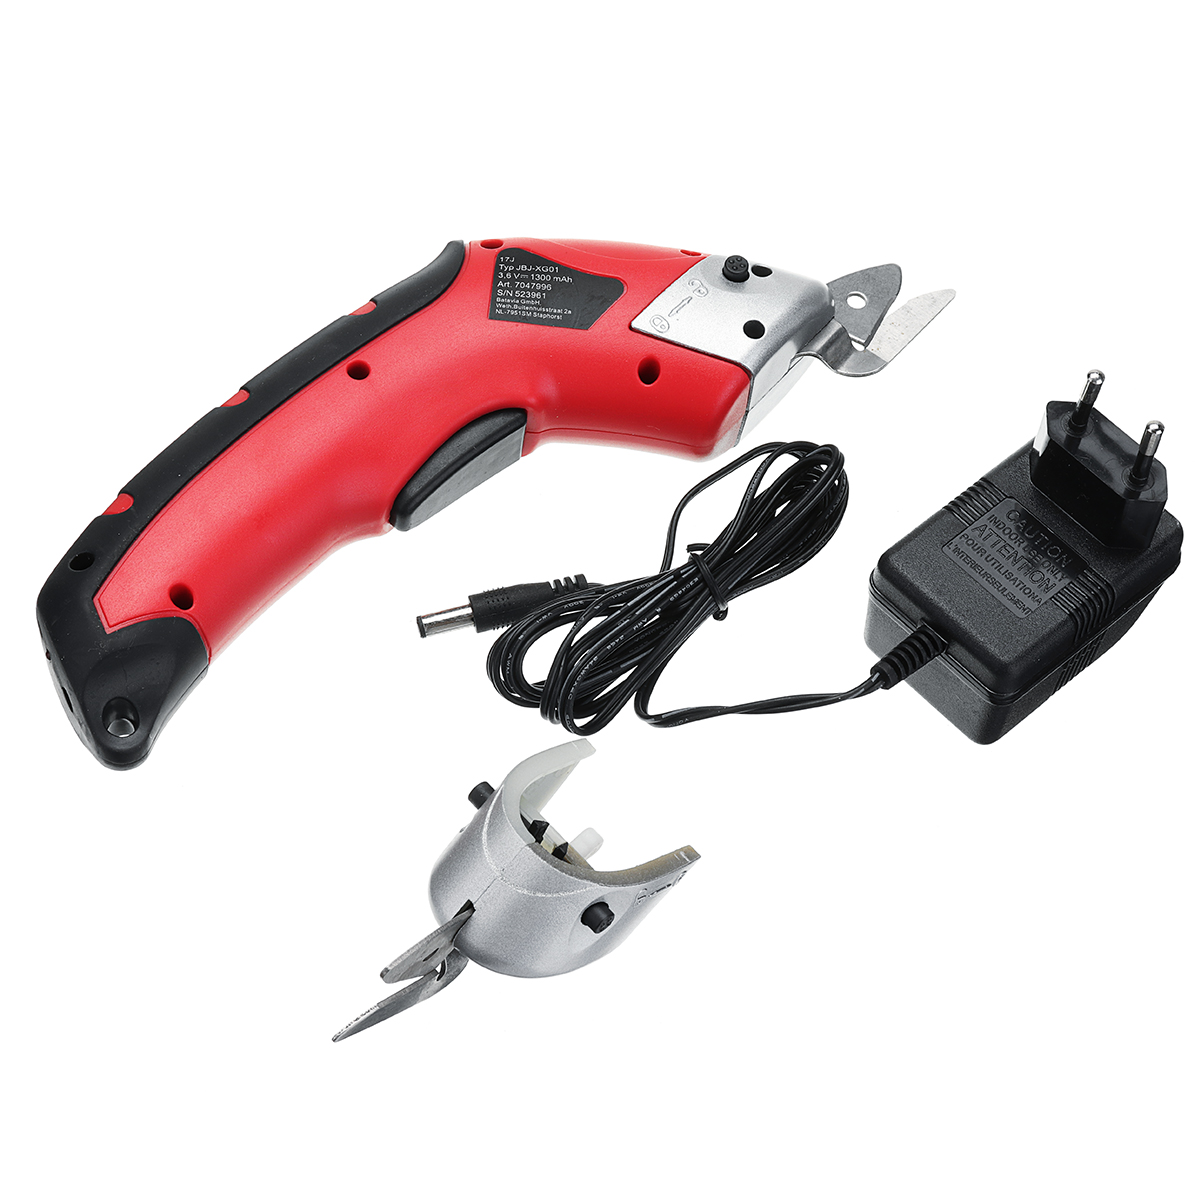 100W Cordless Electric Scissors Auto Cutter with 2 blades Fabric Cutting Machine